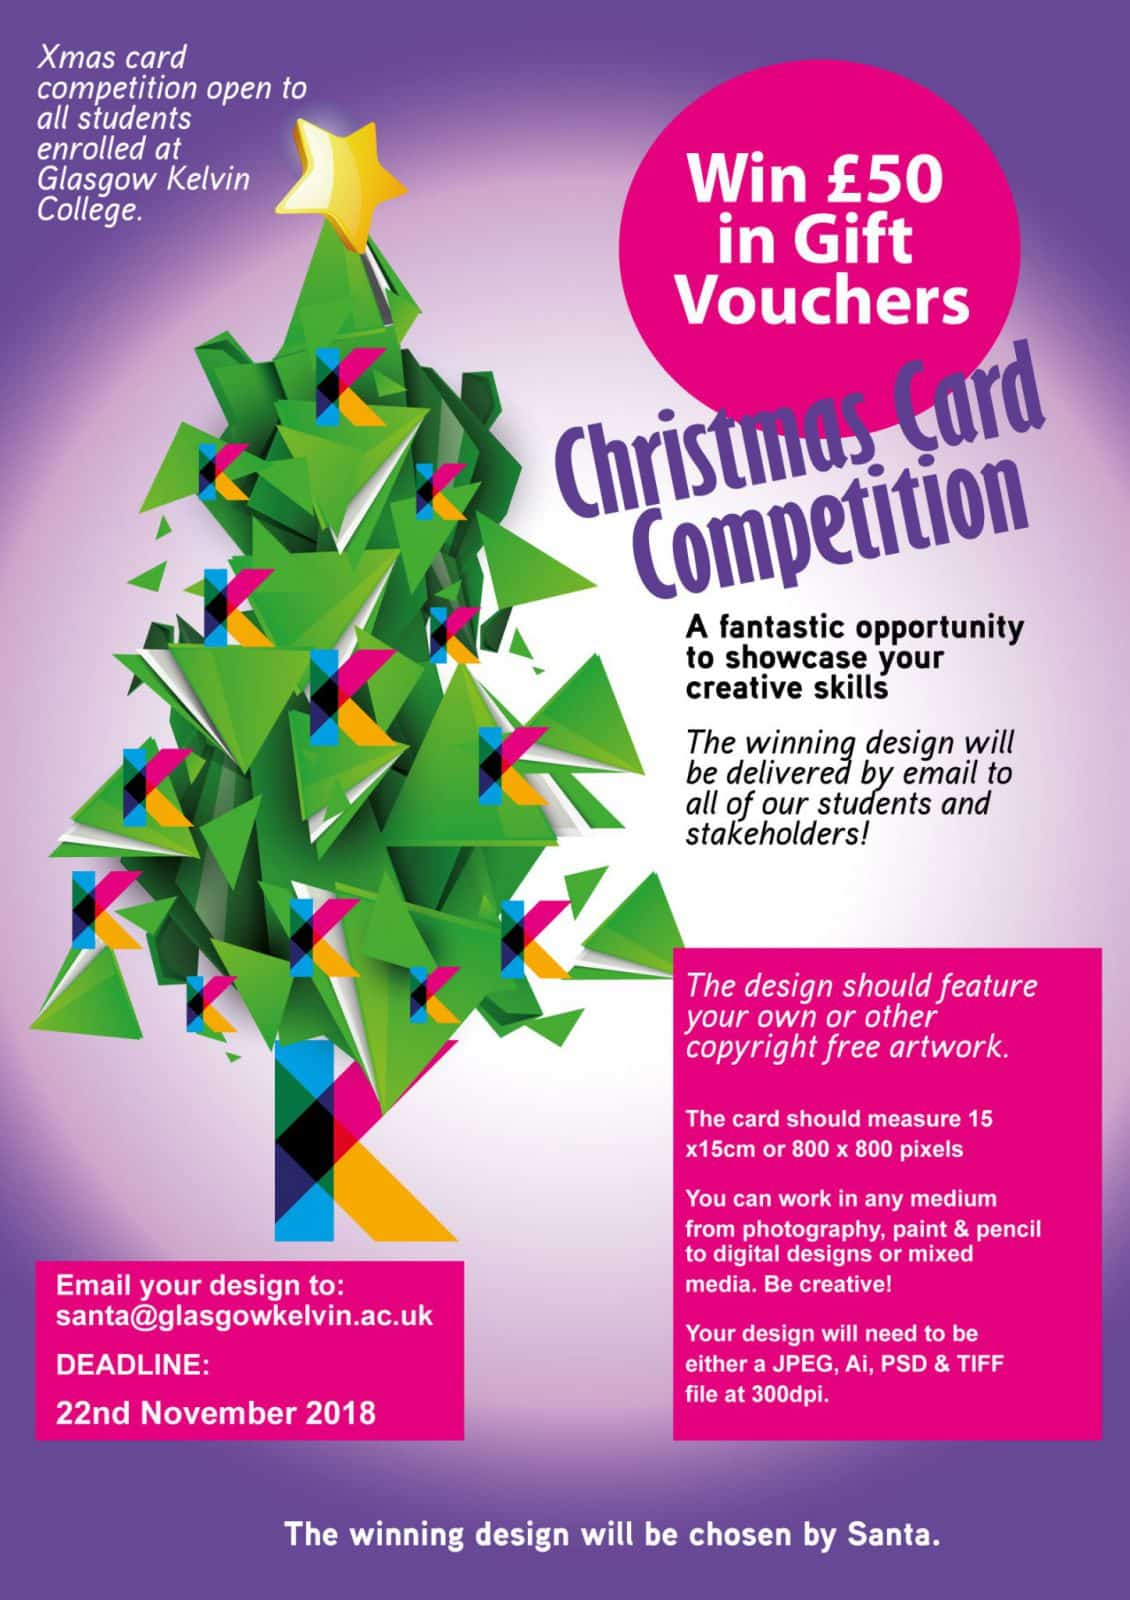 Christmas Card Competition 2018 at Glasgow Kelvin College